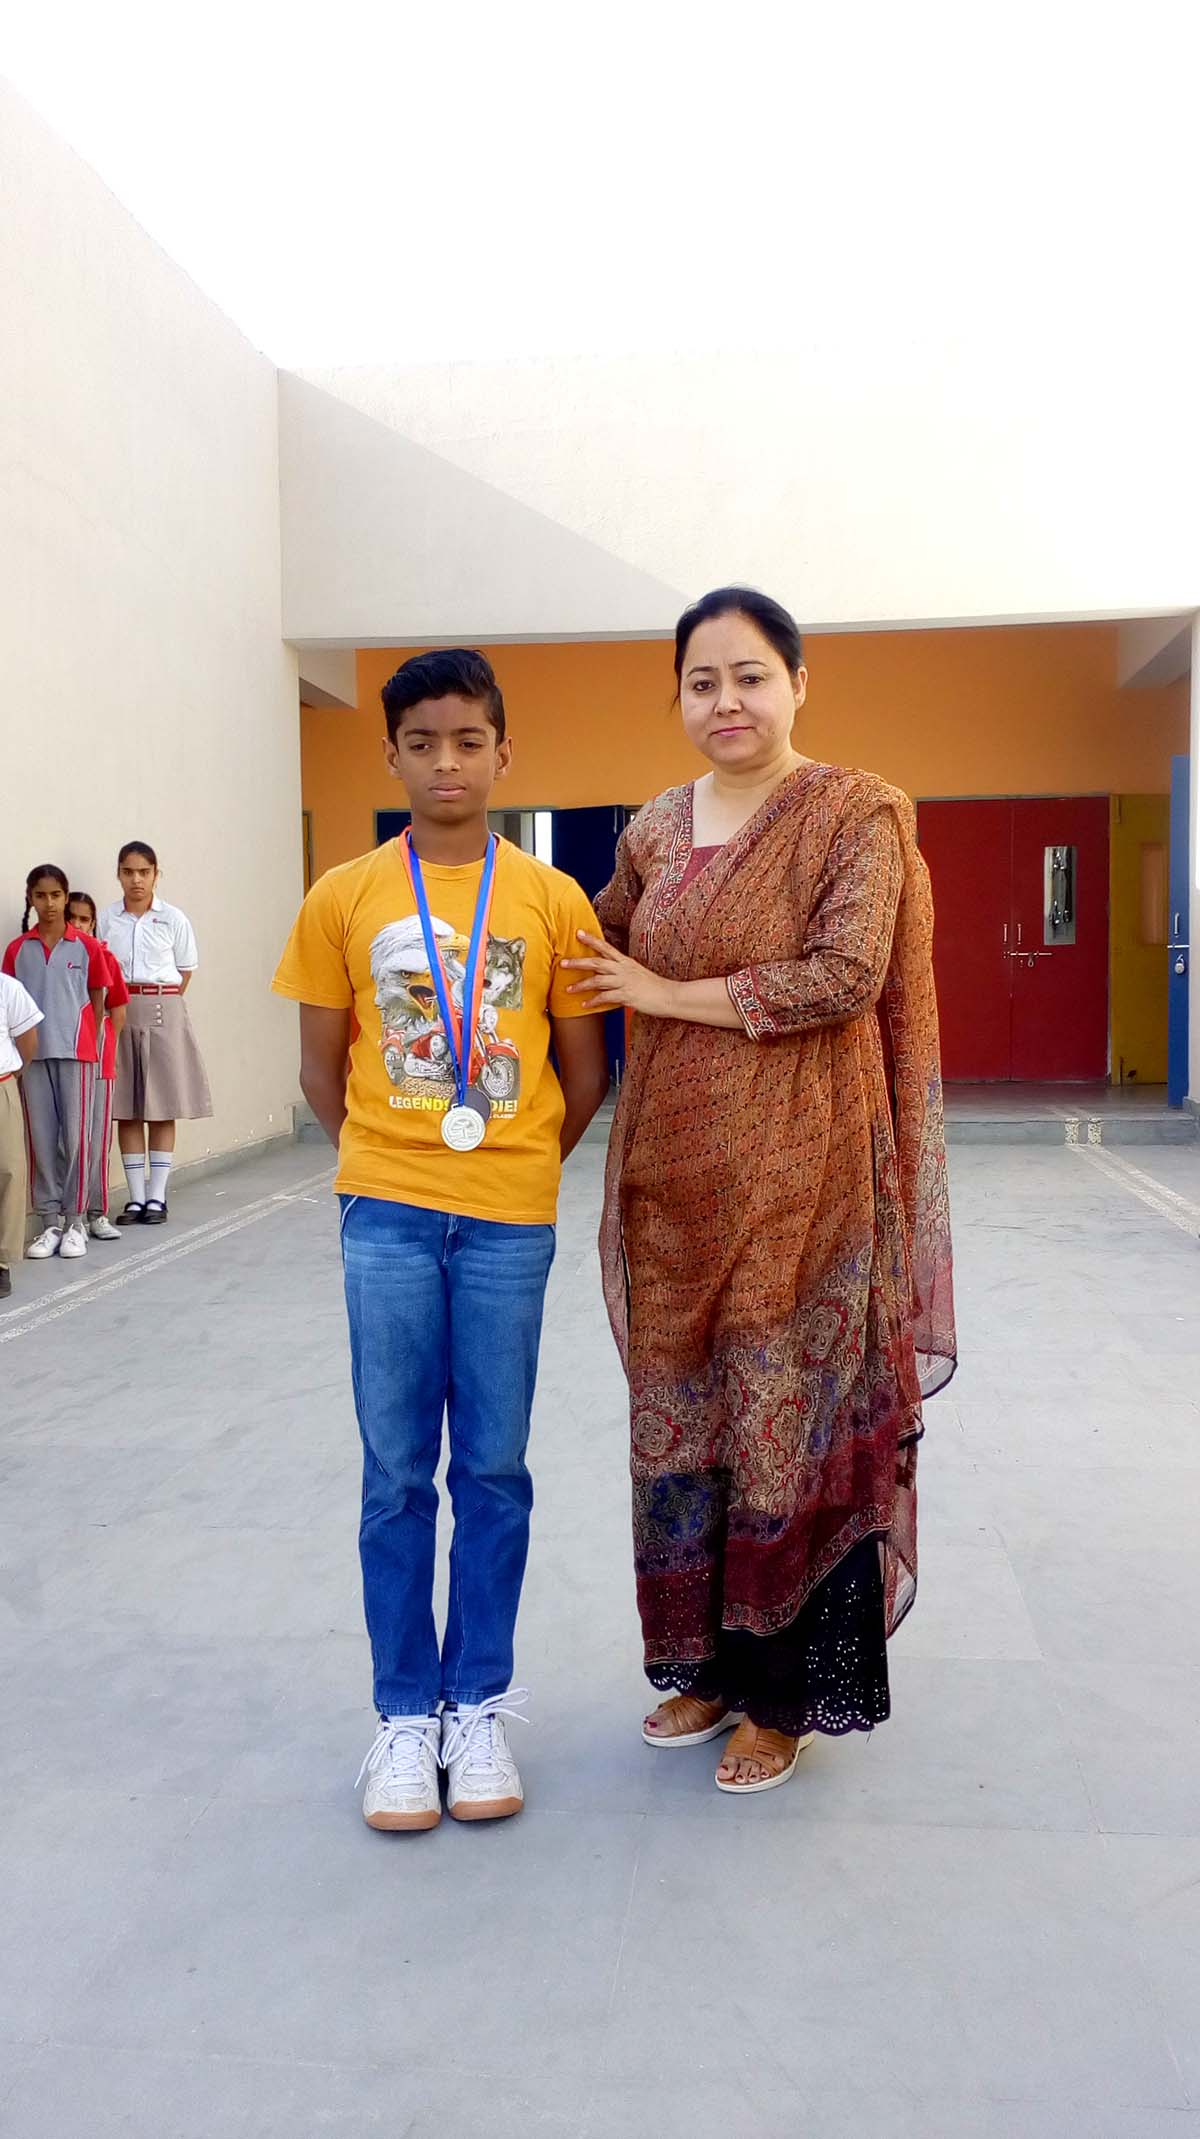 Student got silver and bronze medal in gymnastic